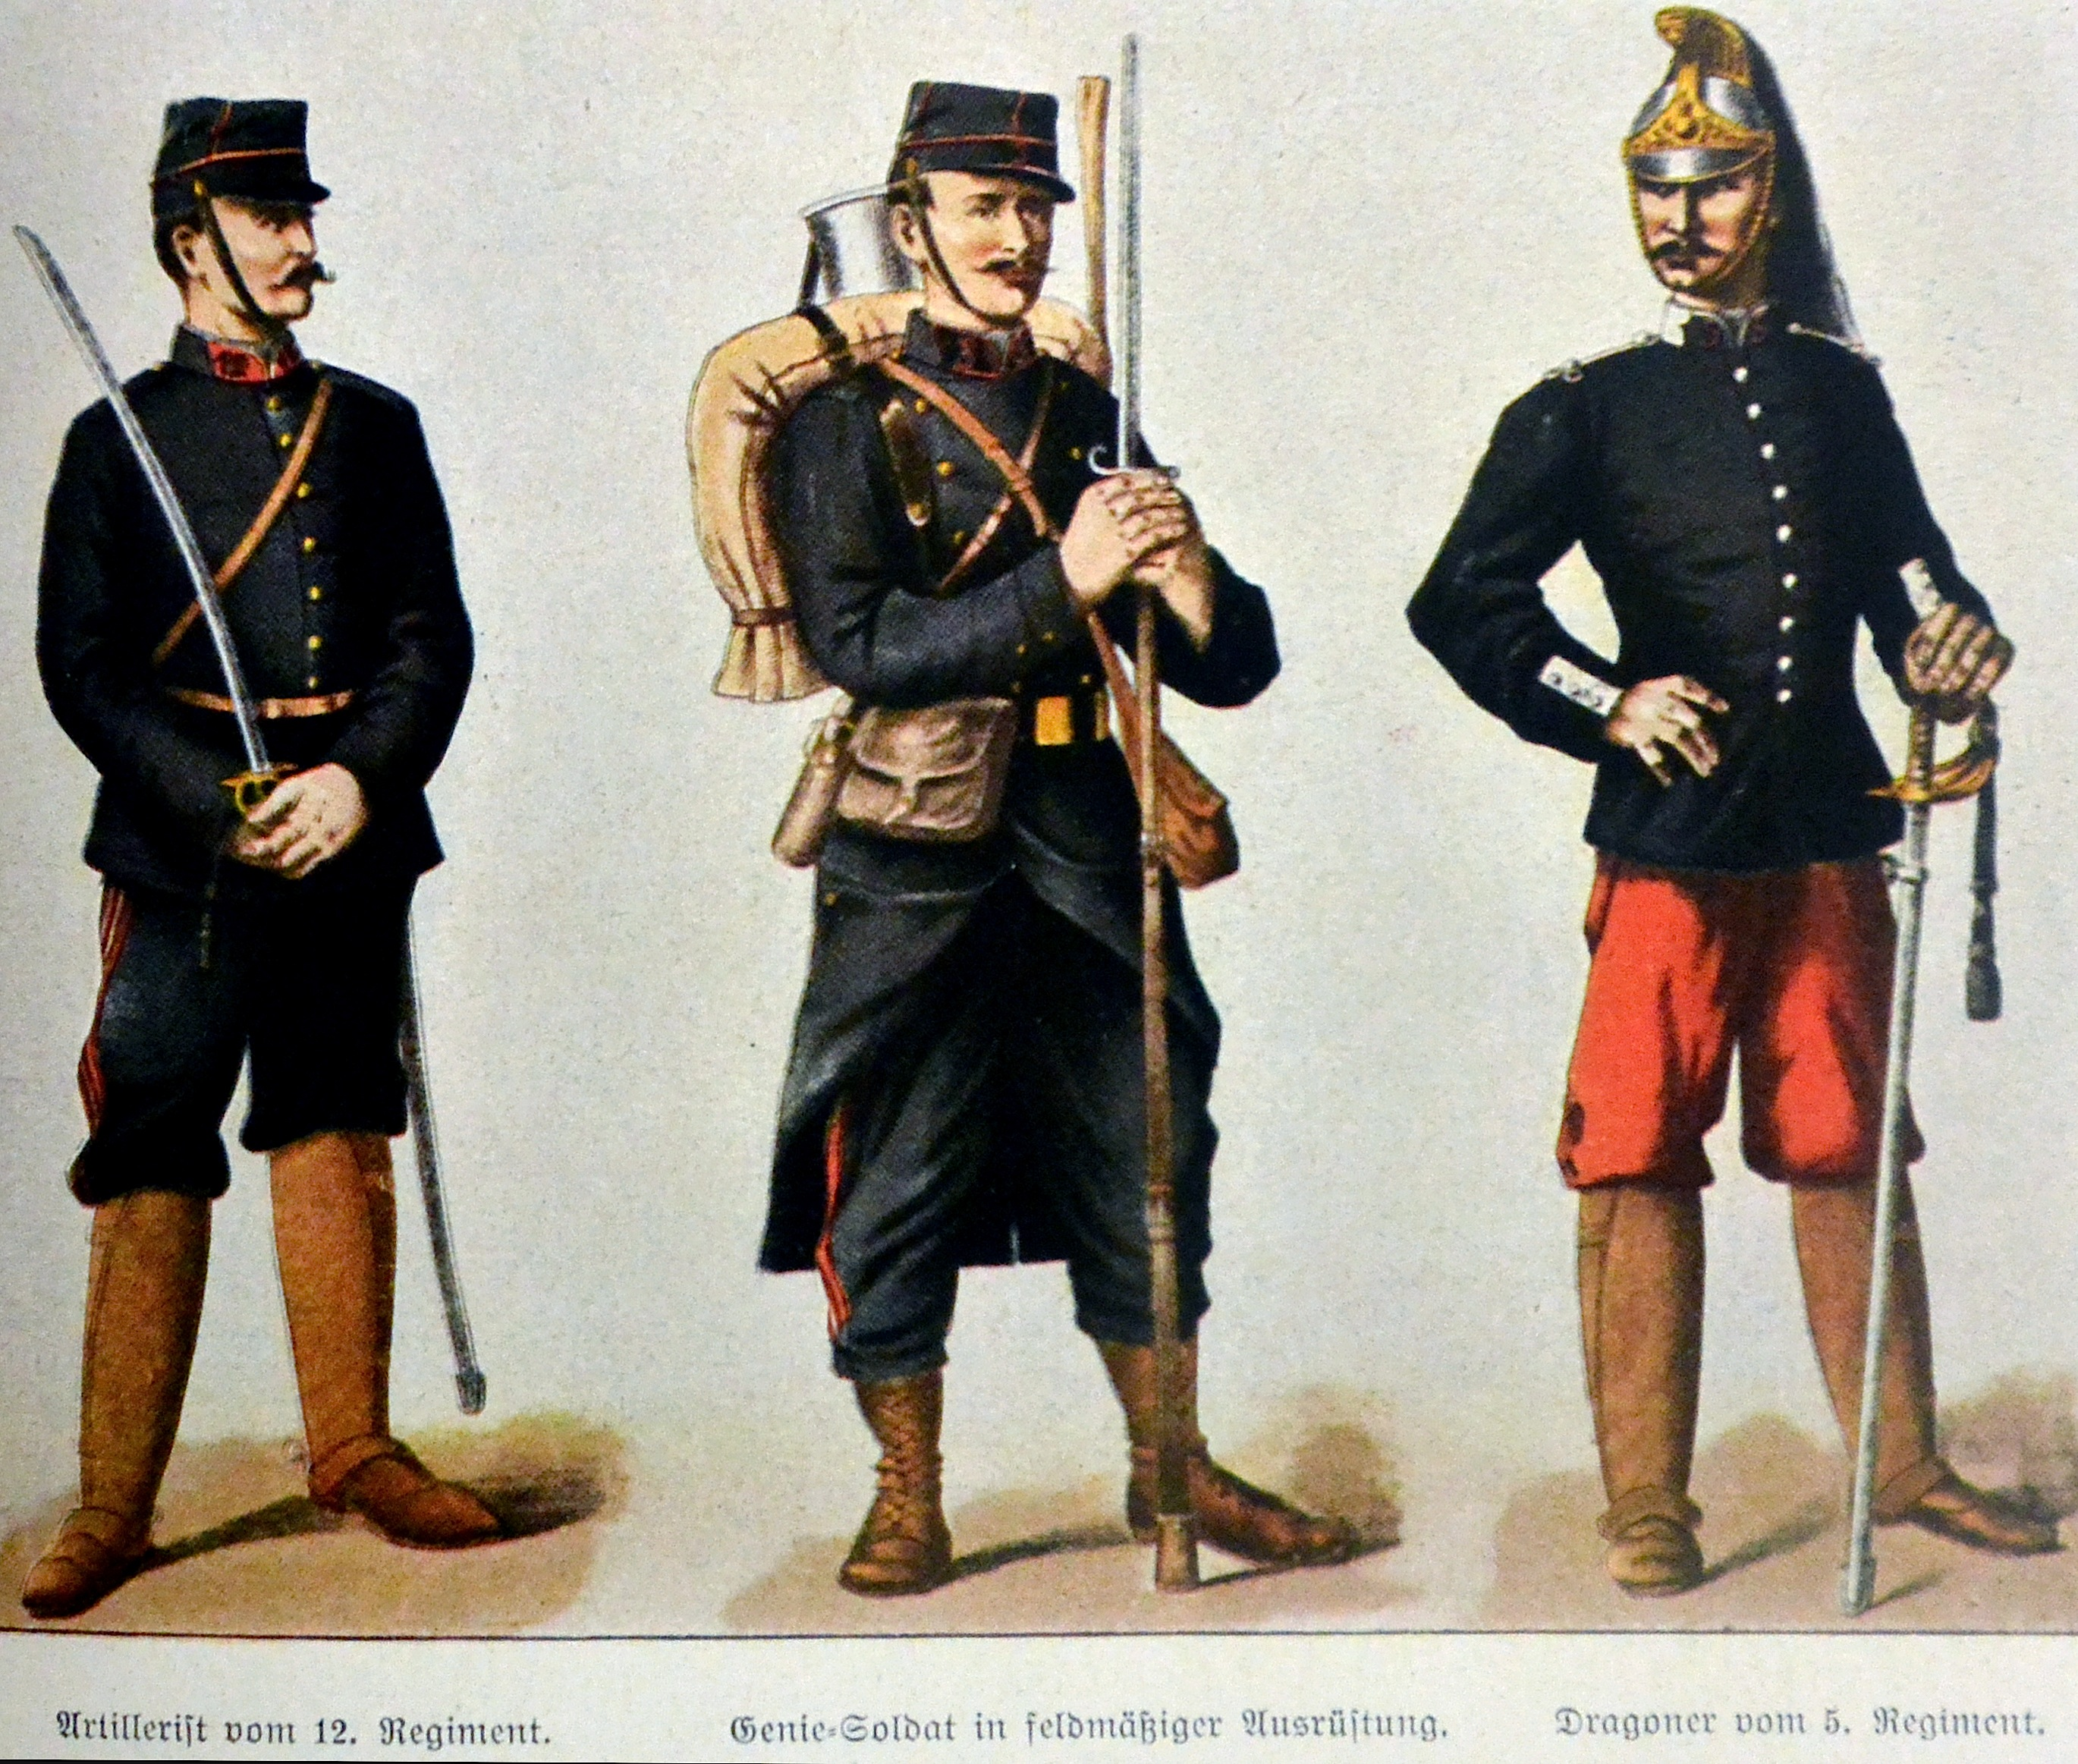 the French uniforms (artillery, engineering, dragons) - le uniformi francesi (artiglieria, genio, dragoni)